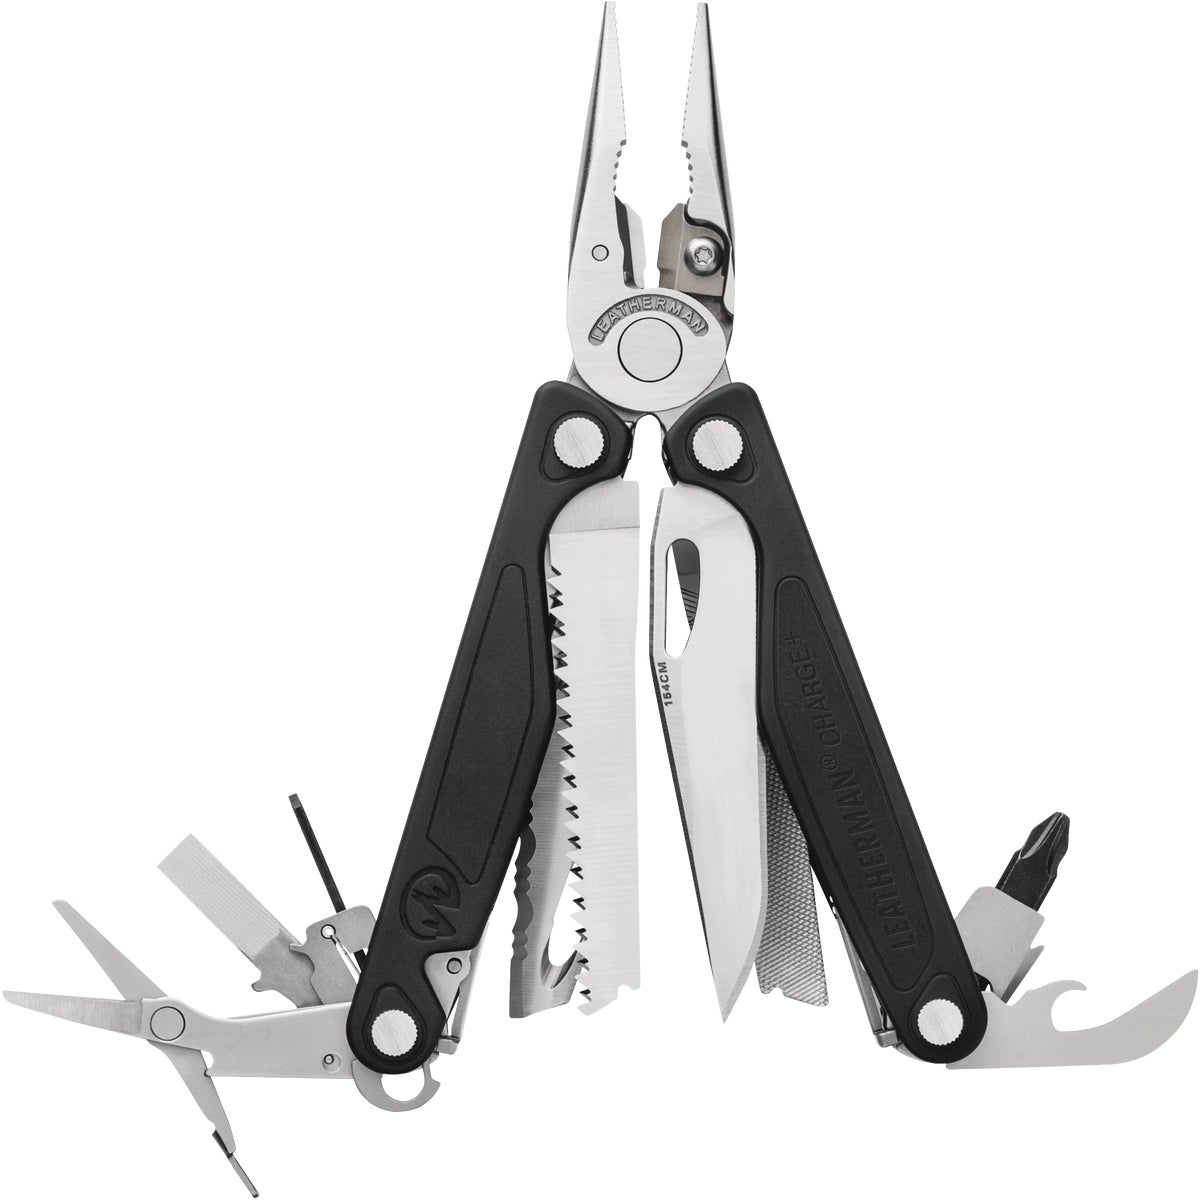 CHARGE ALX MULTI-TOOL - 830676 by Leatherman Tool